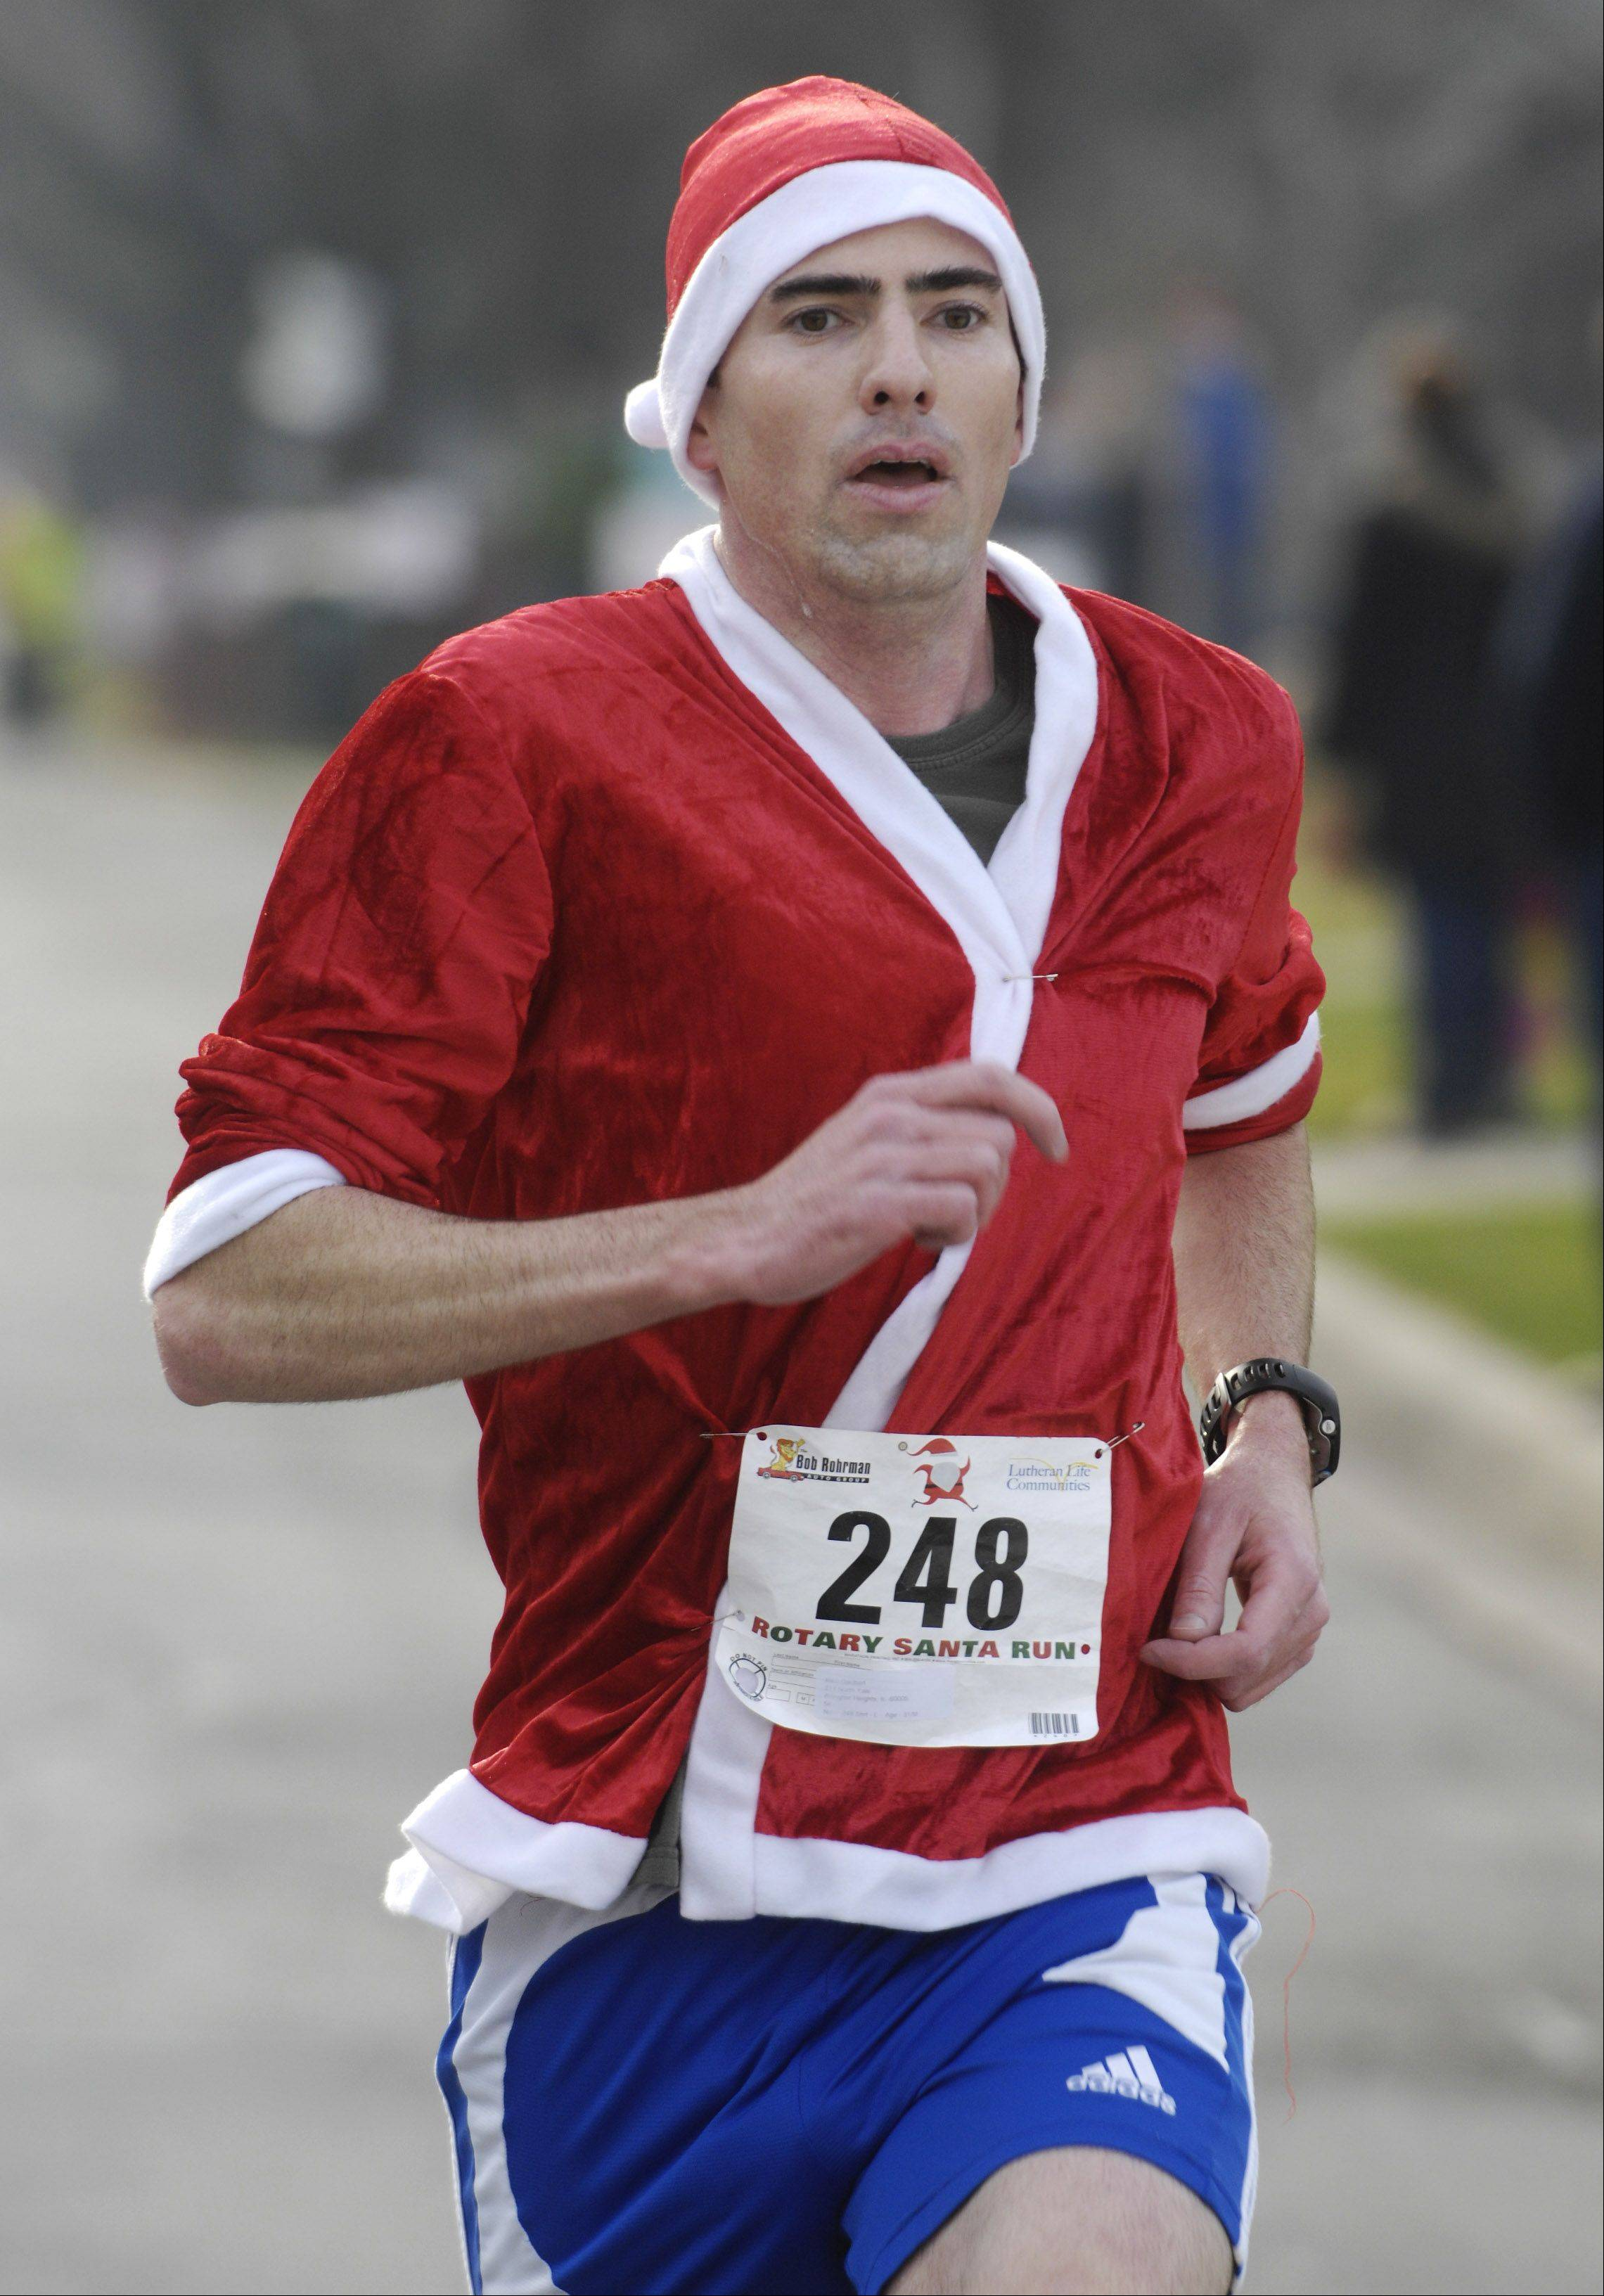 Rich Daubert is the first runner to complete Saturday's 5k Santa Run in Arlington Heights.